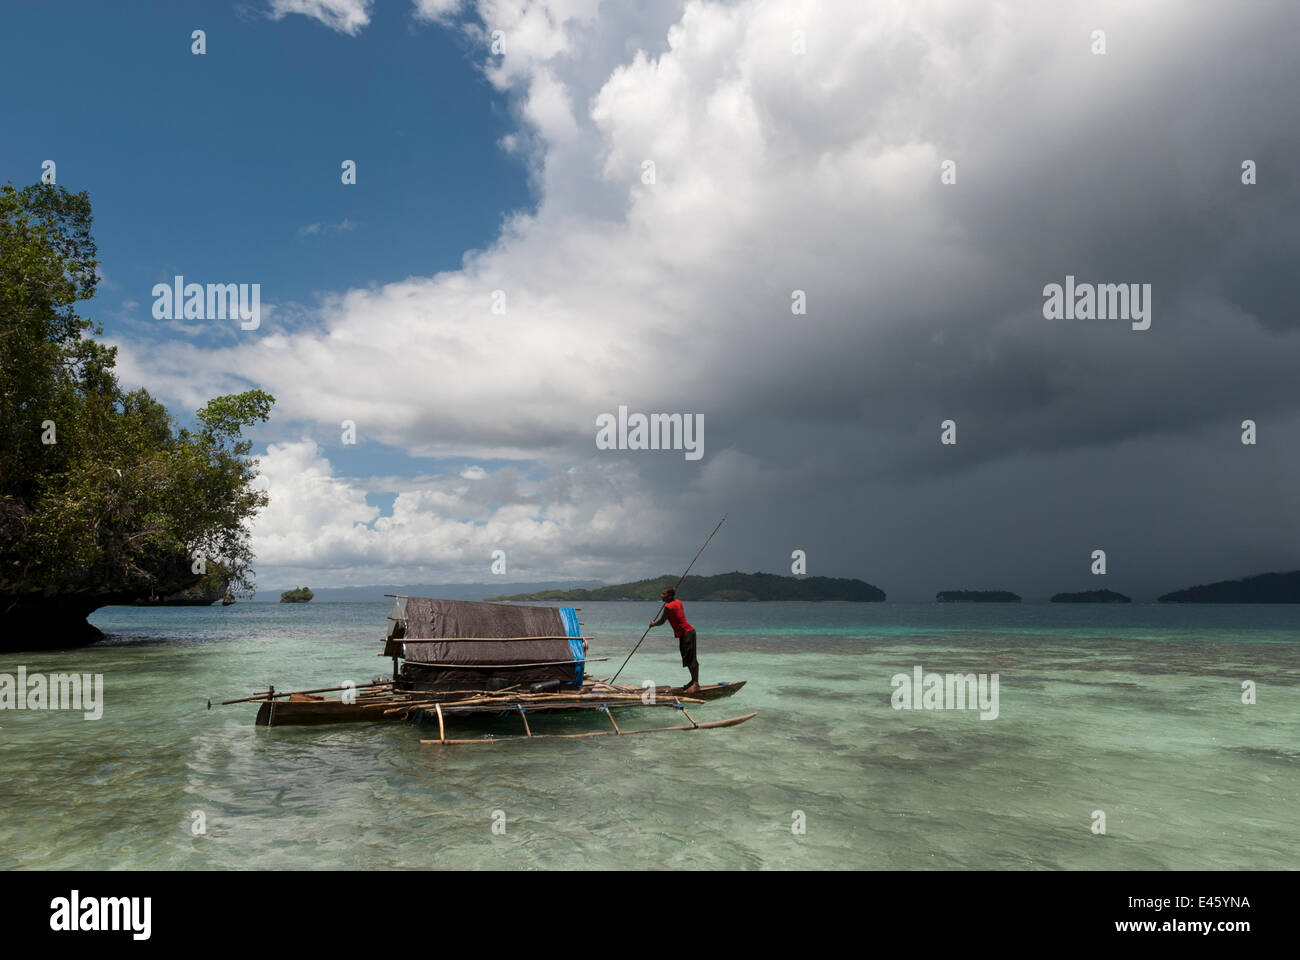 West Papuan fisherman in his outrigger house boat leaving the shallow island. Raja Ampat, West Papua, Indonesia, - Stock Image